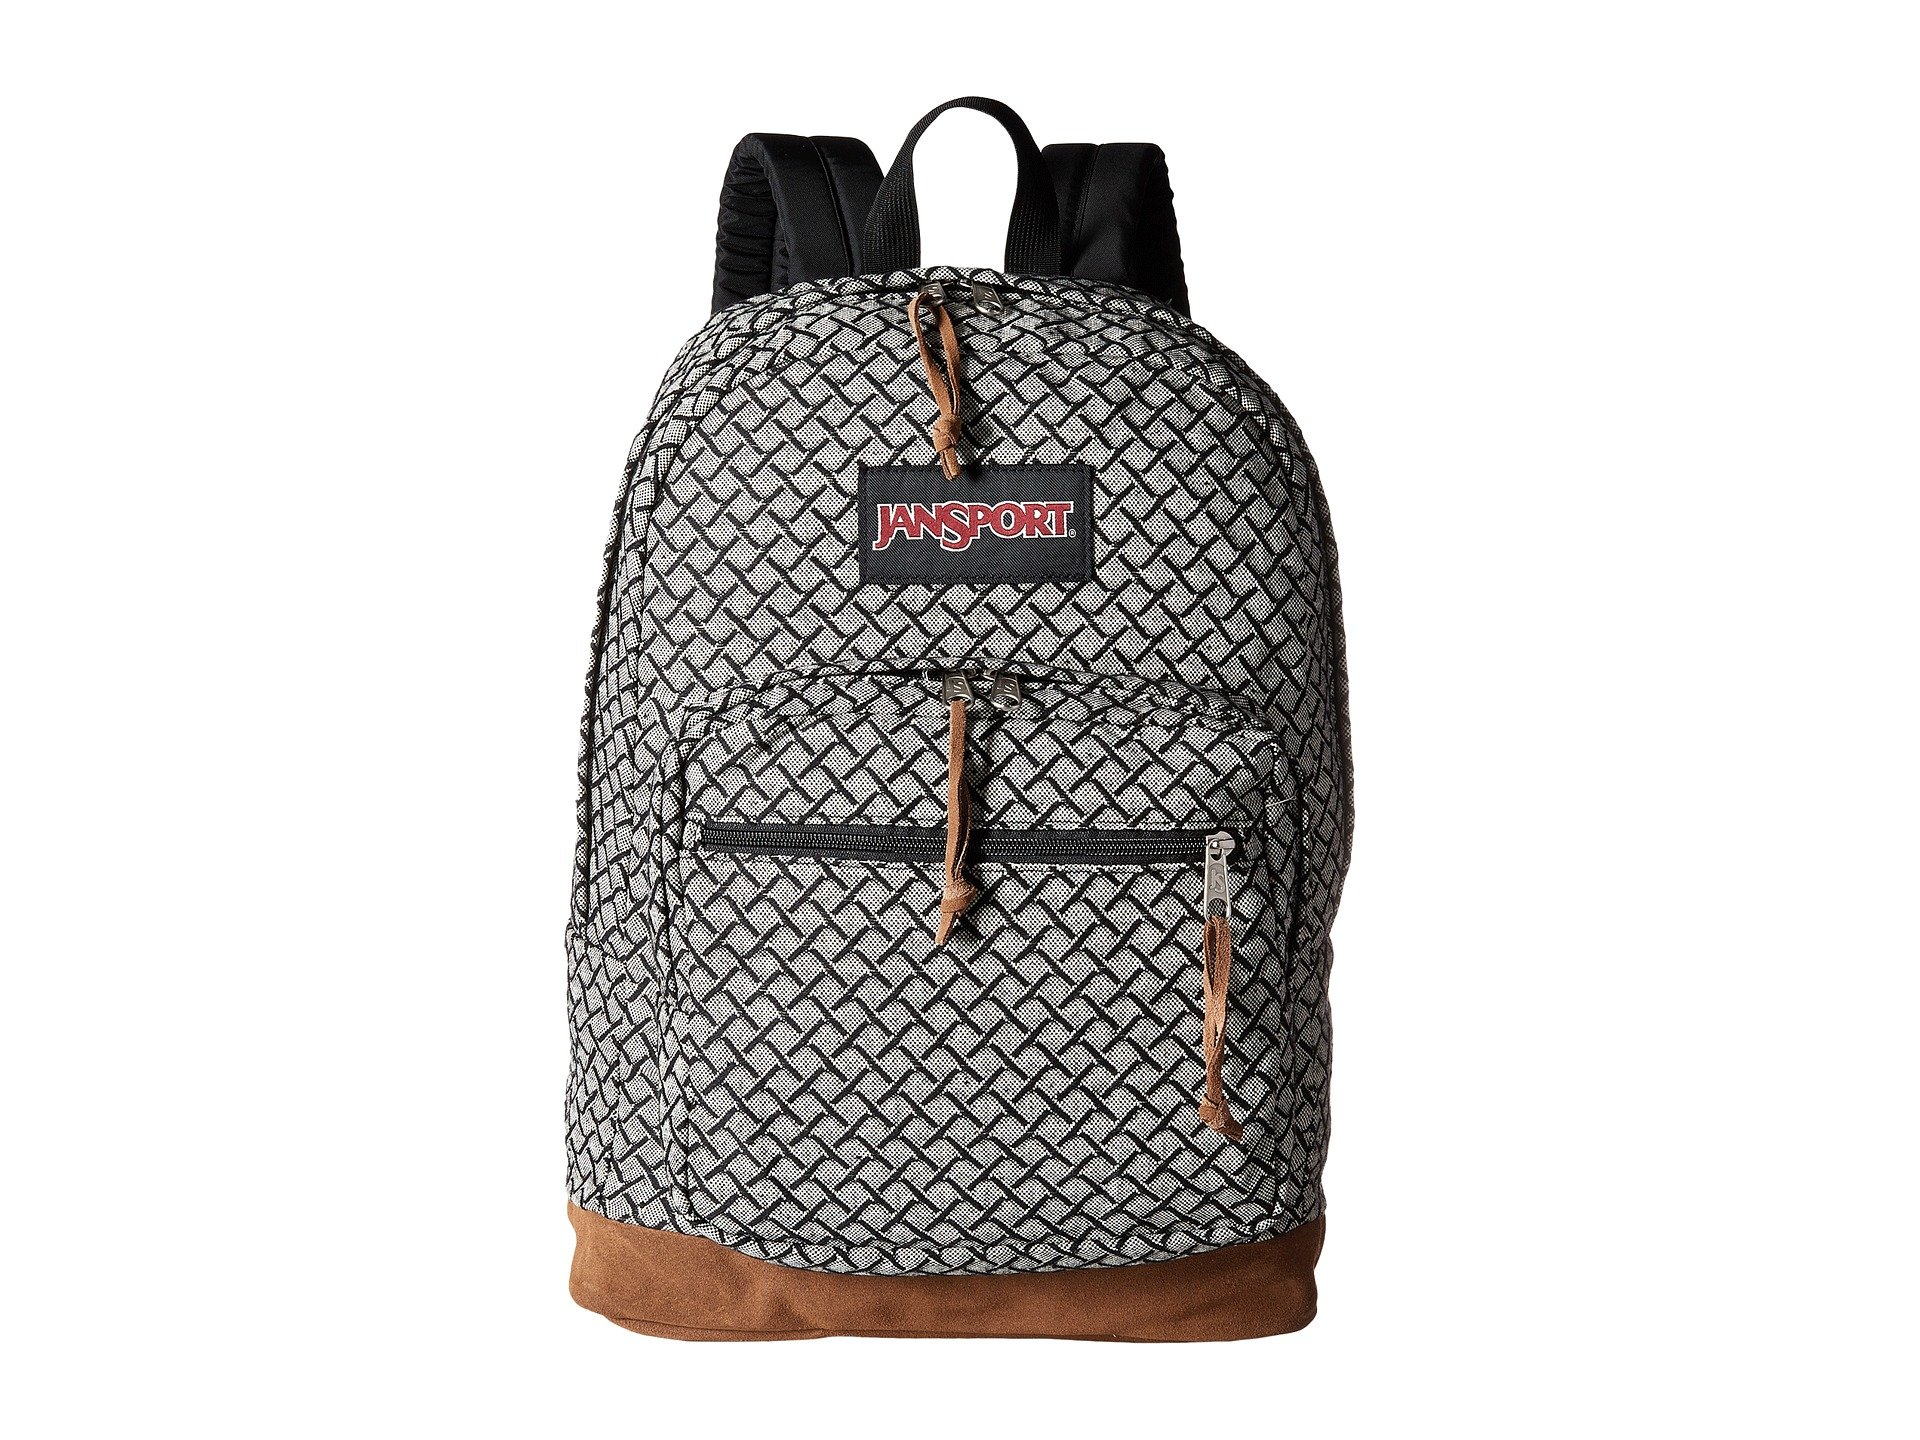 JanSport Unisex Right Pack Expressions Black/White Fish Scale Jacquard Backpack